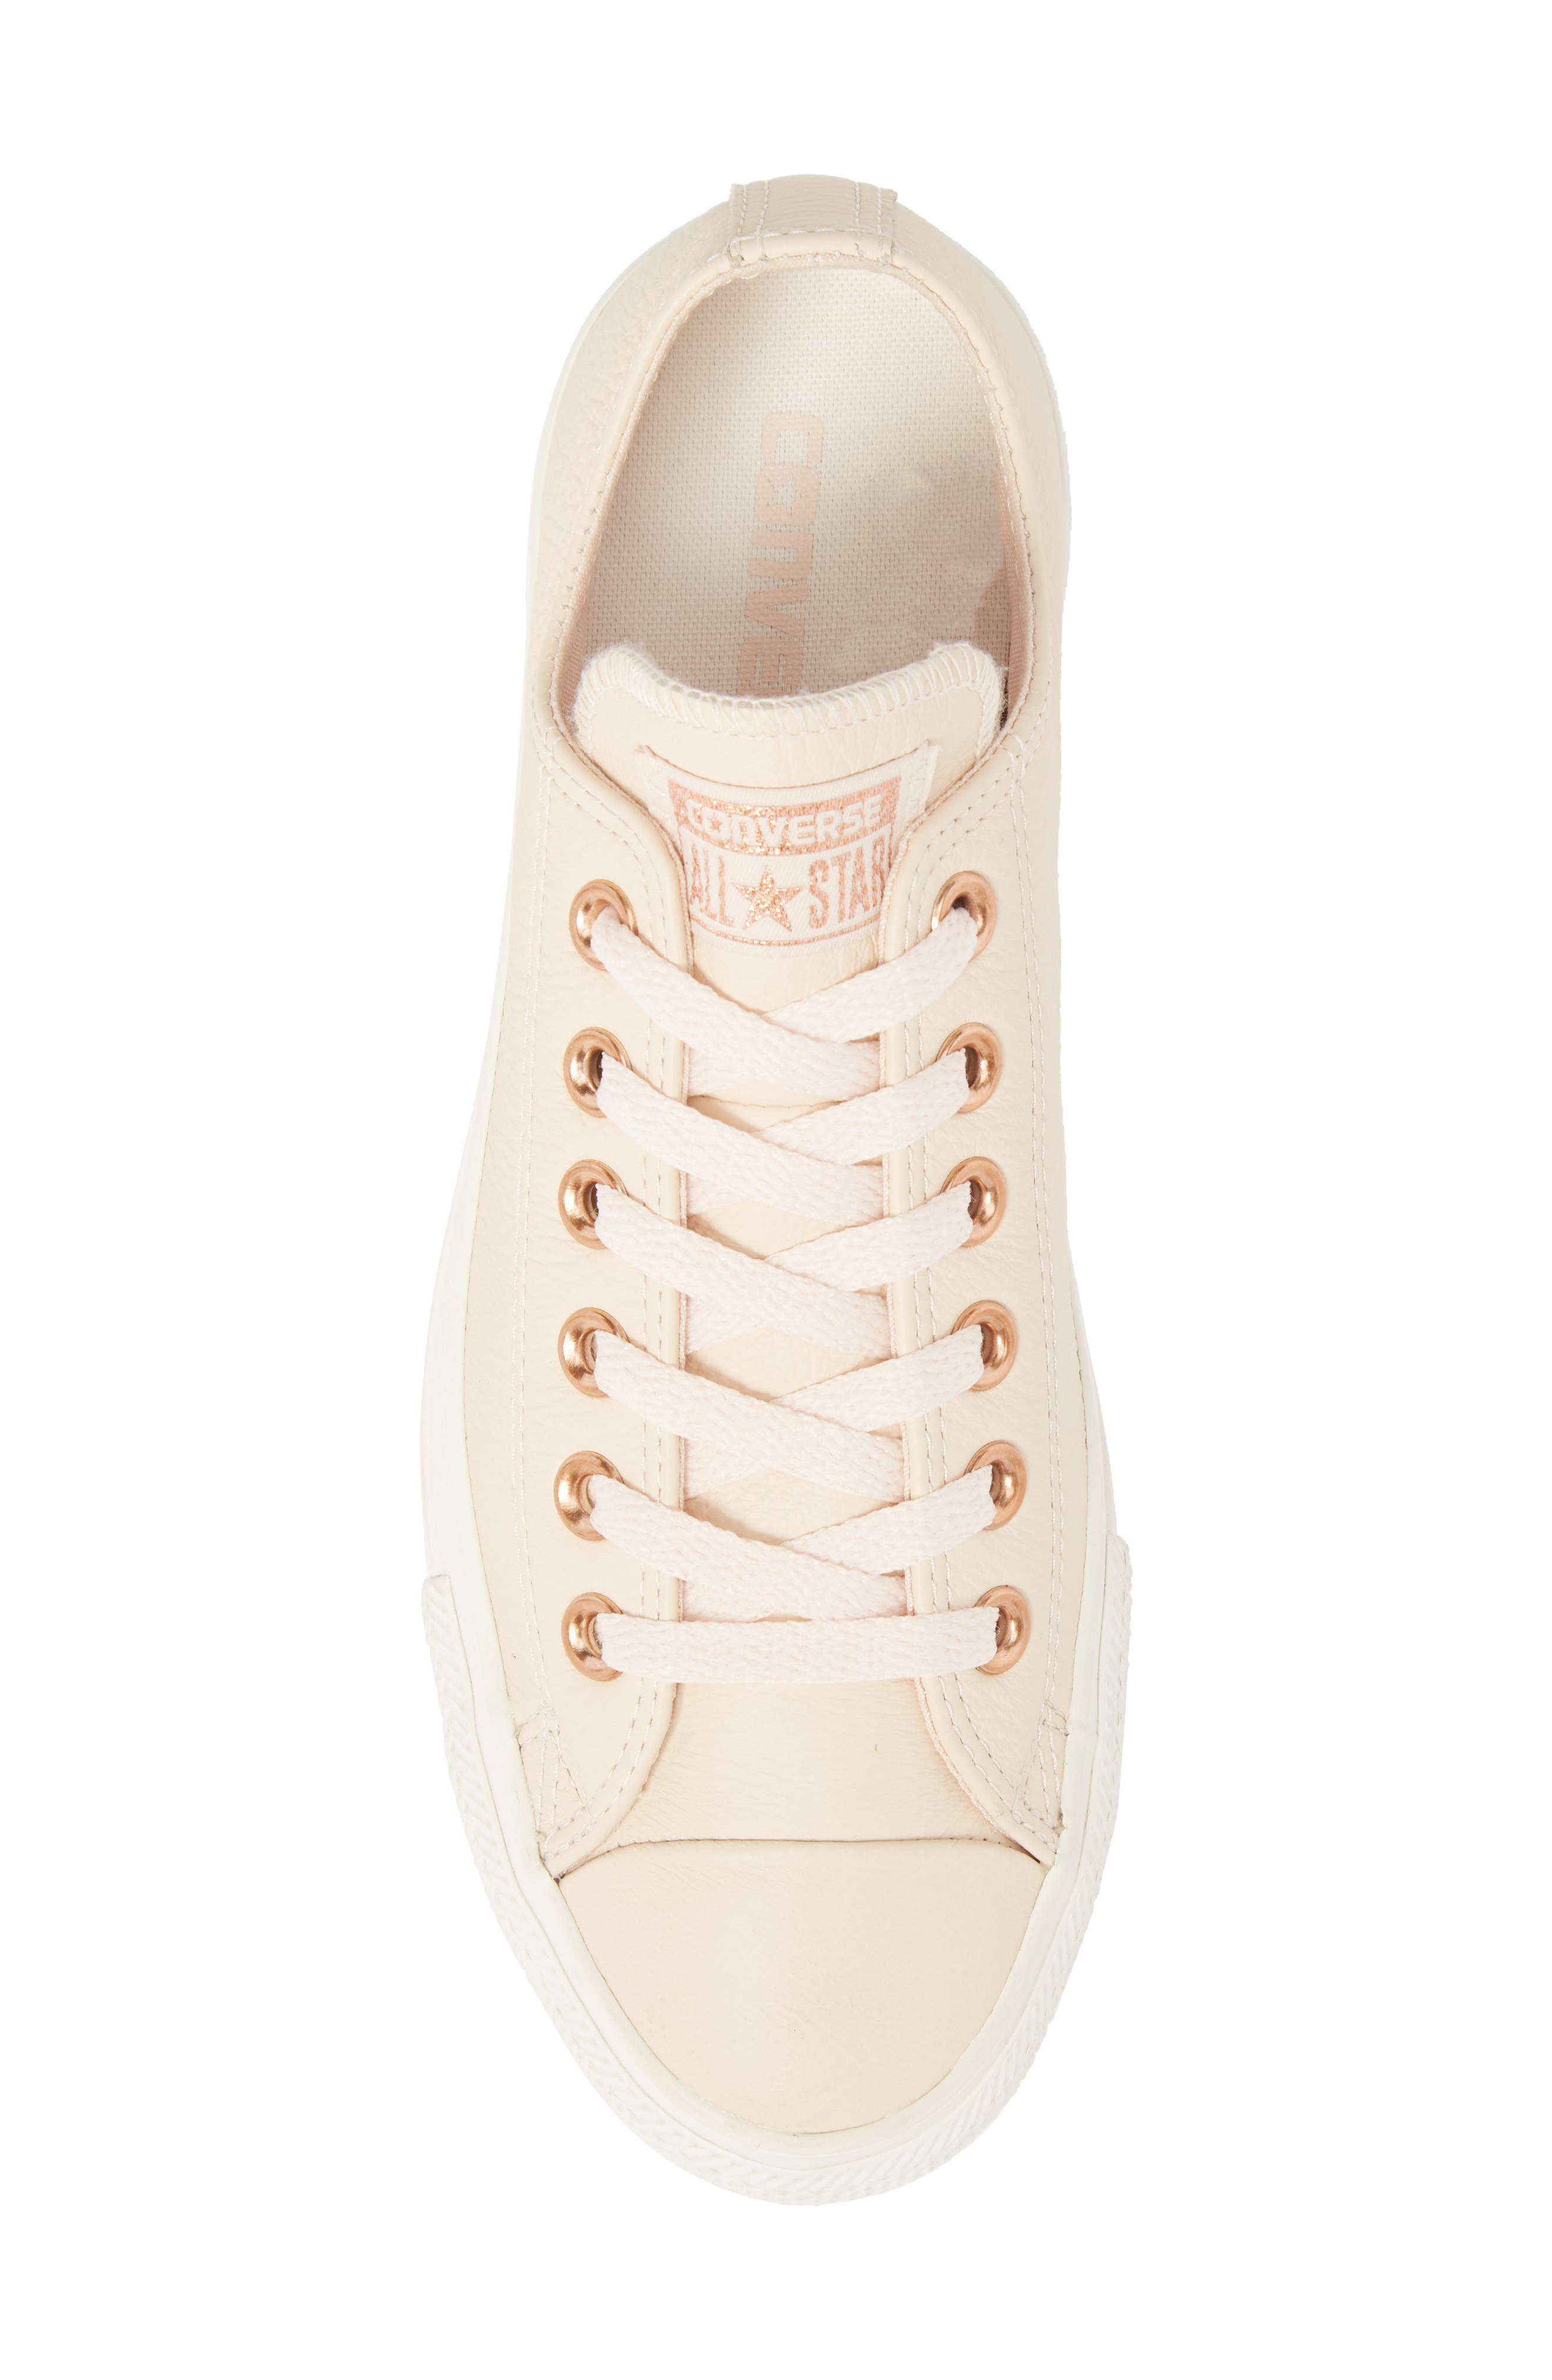 Chuck Taylor<sup>®</sup> All Star<sup>®</sup> Seasonal Ox Low Top Sneaker,                             Alternate thumbnail 5, color,                             Pastel Rose Leather